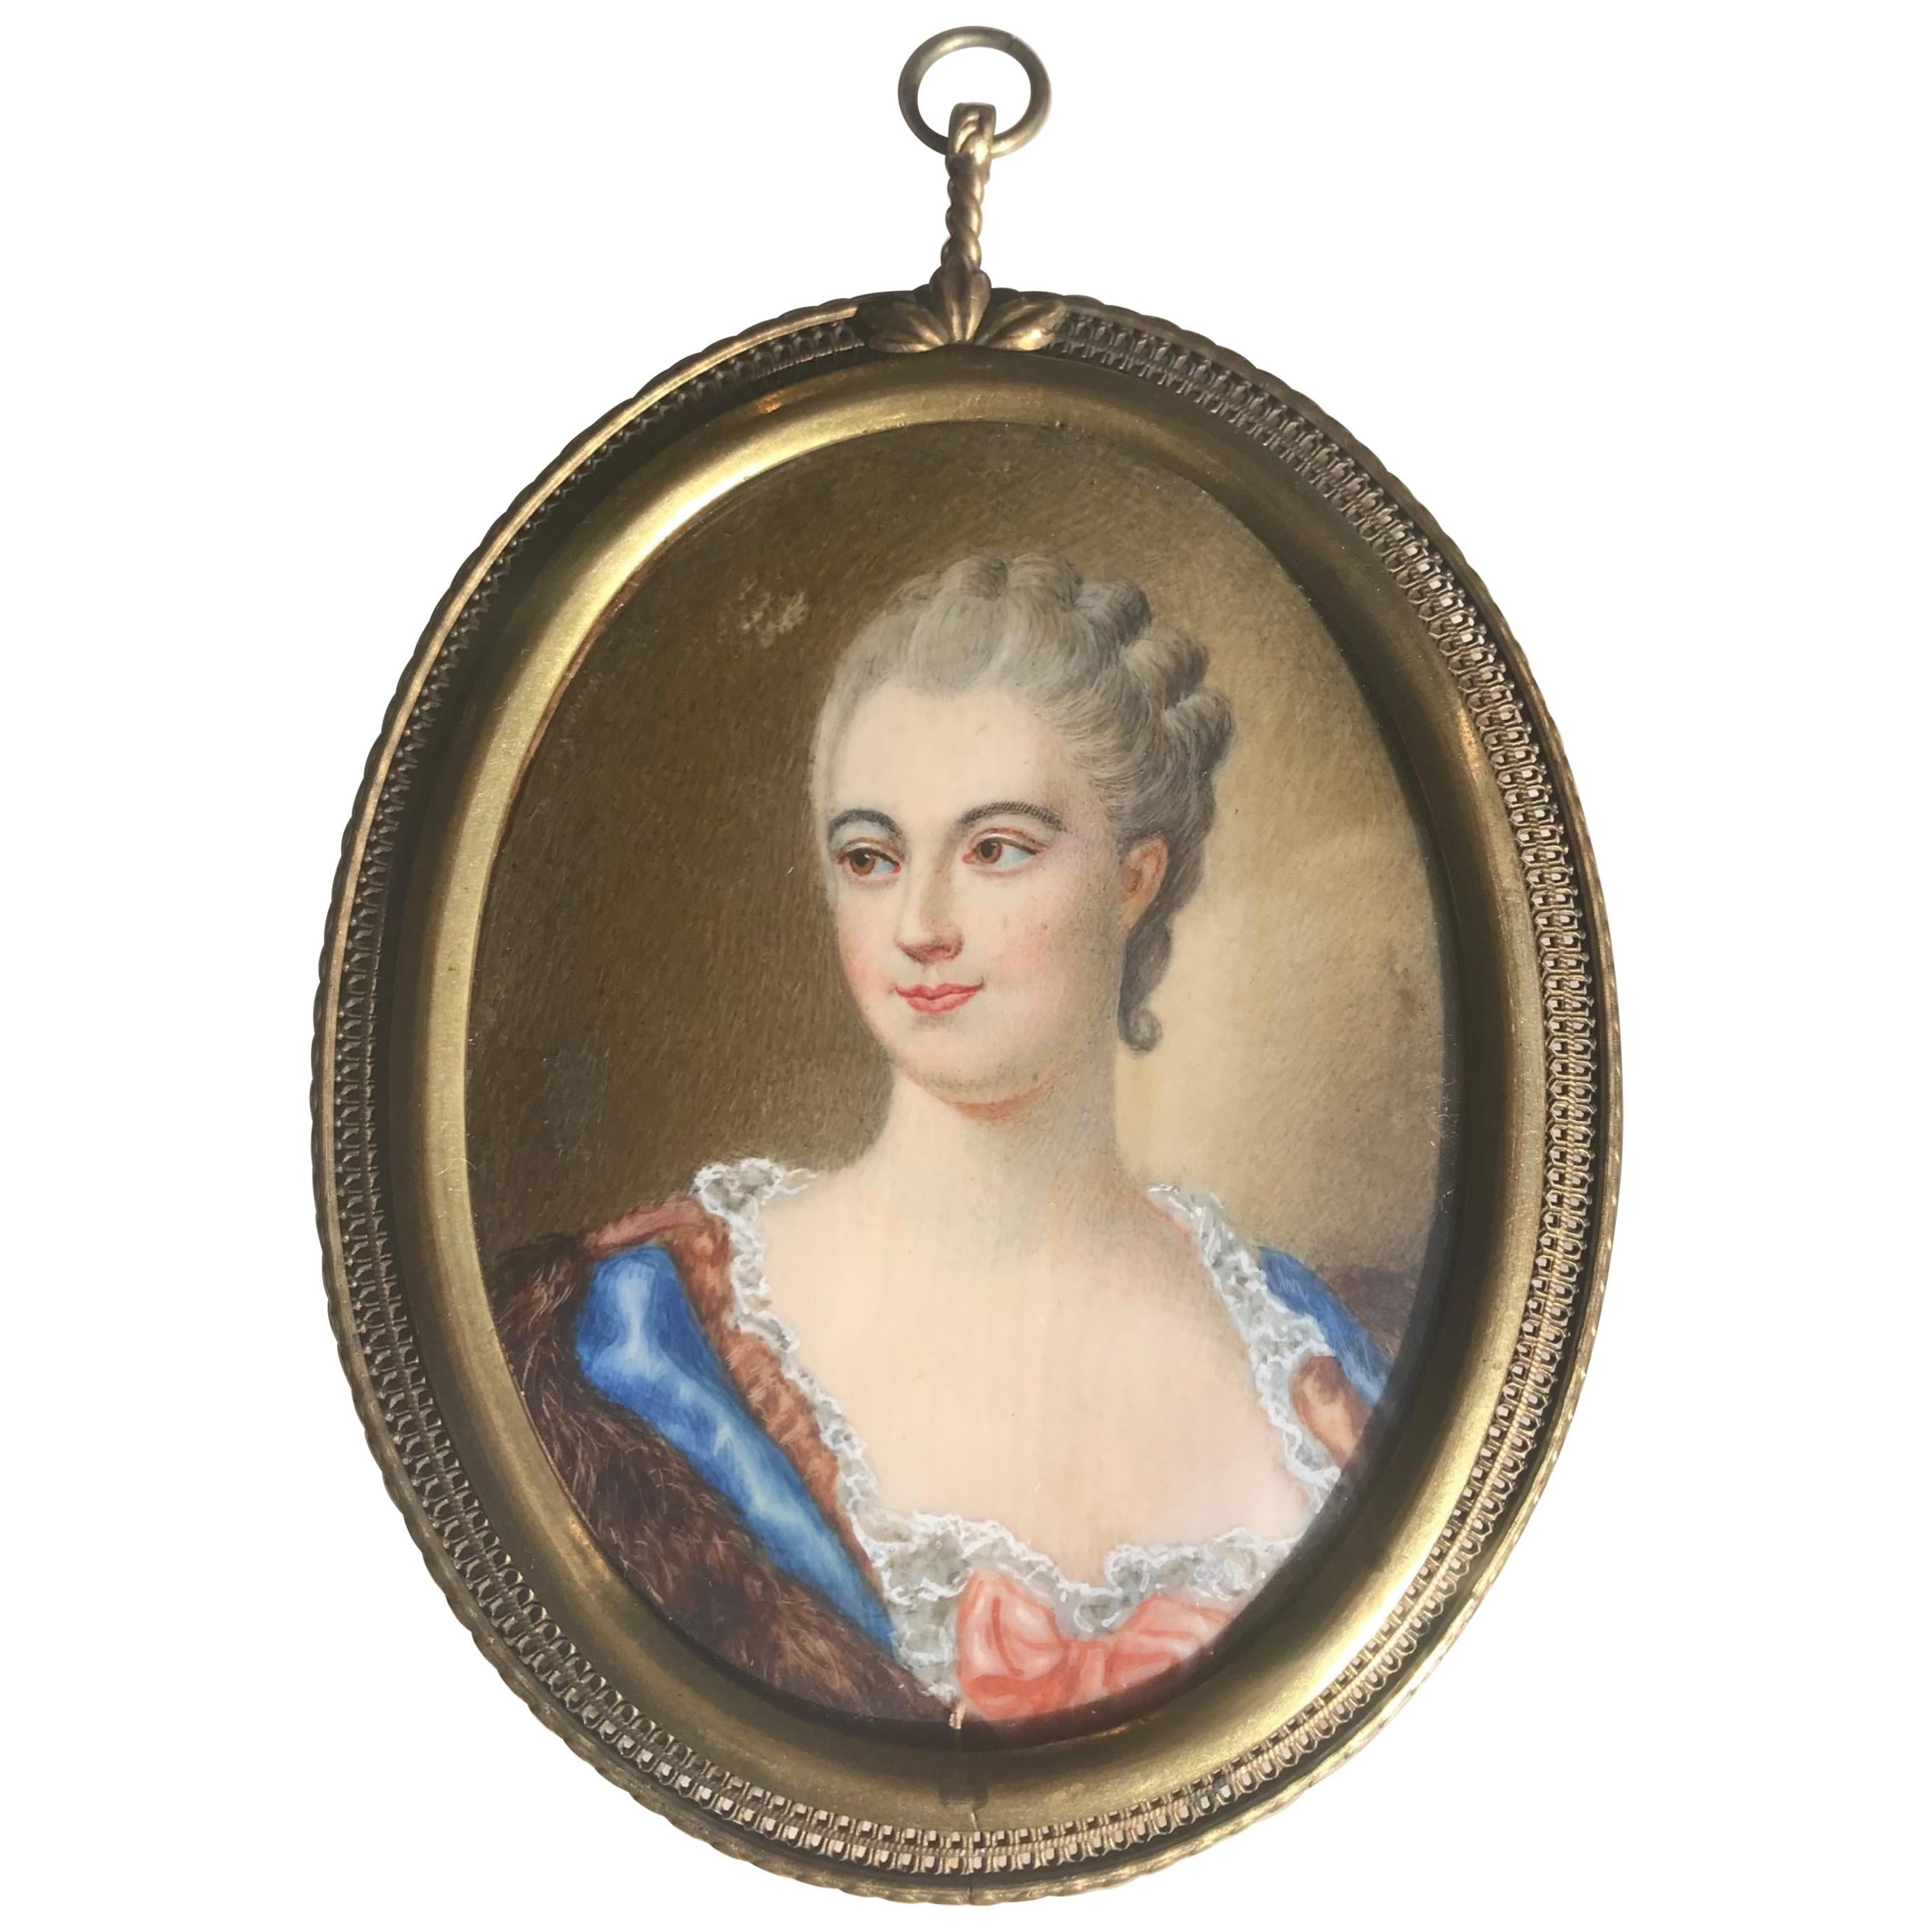 19th Century French Hand Painted Portrait Miniature